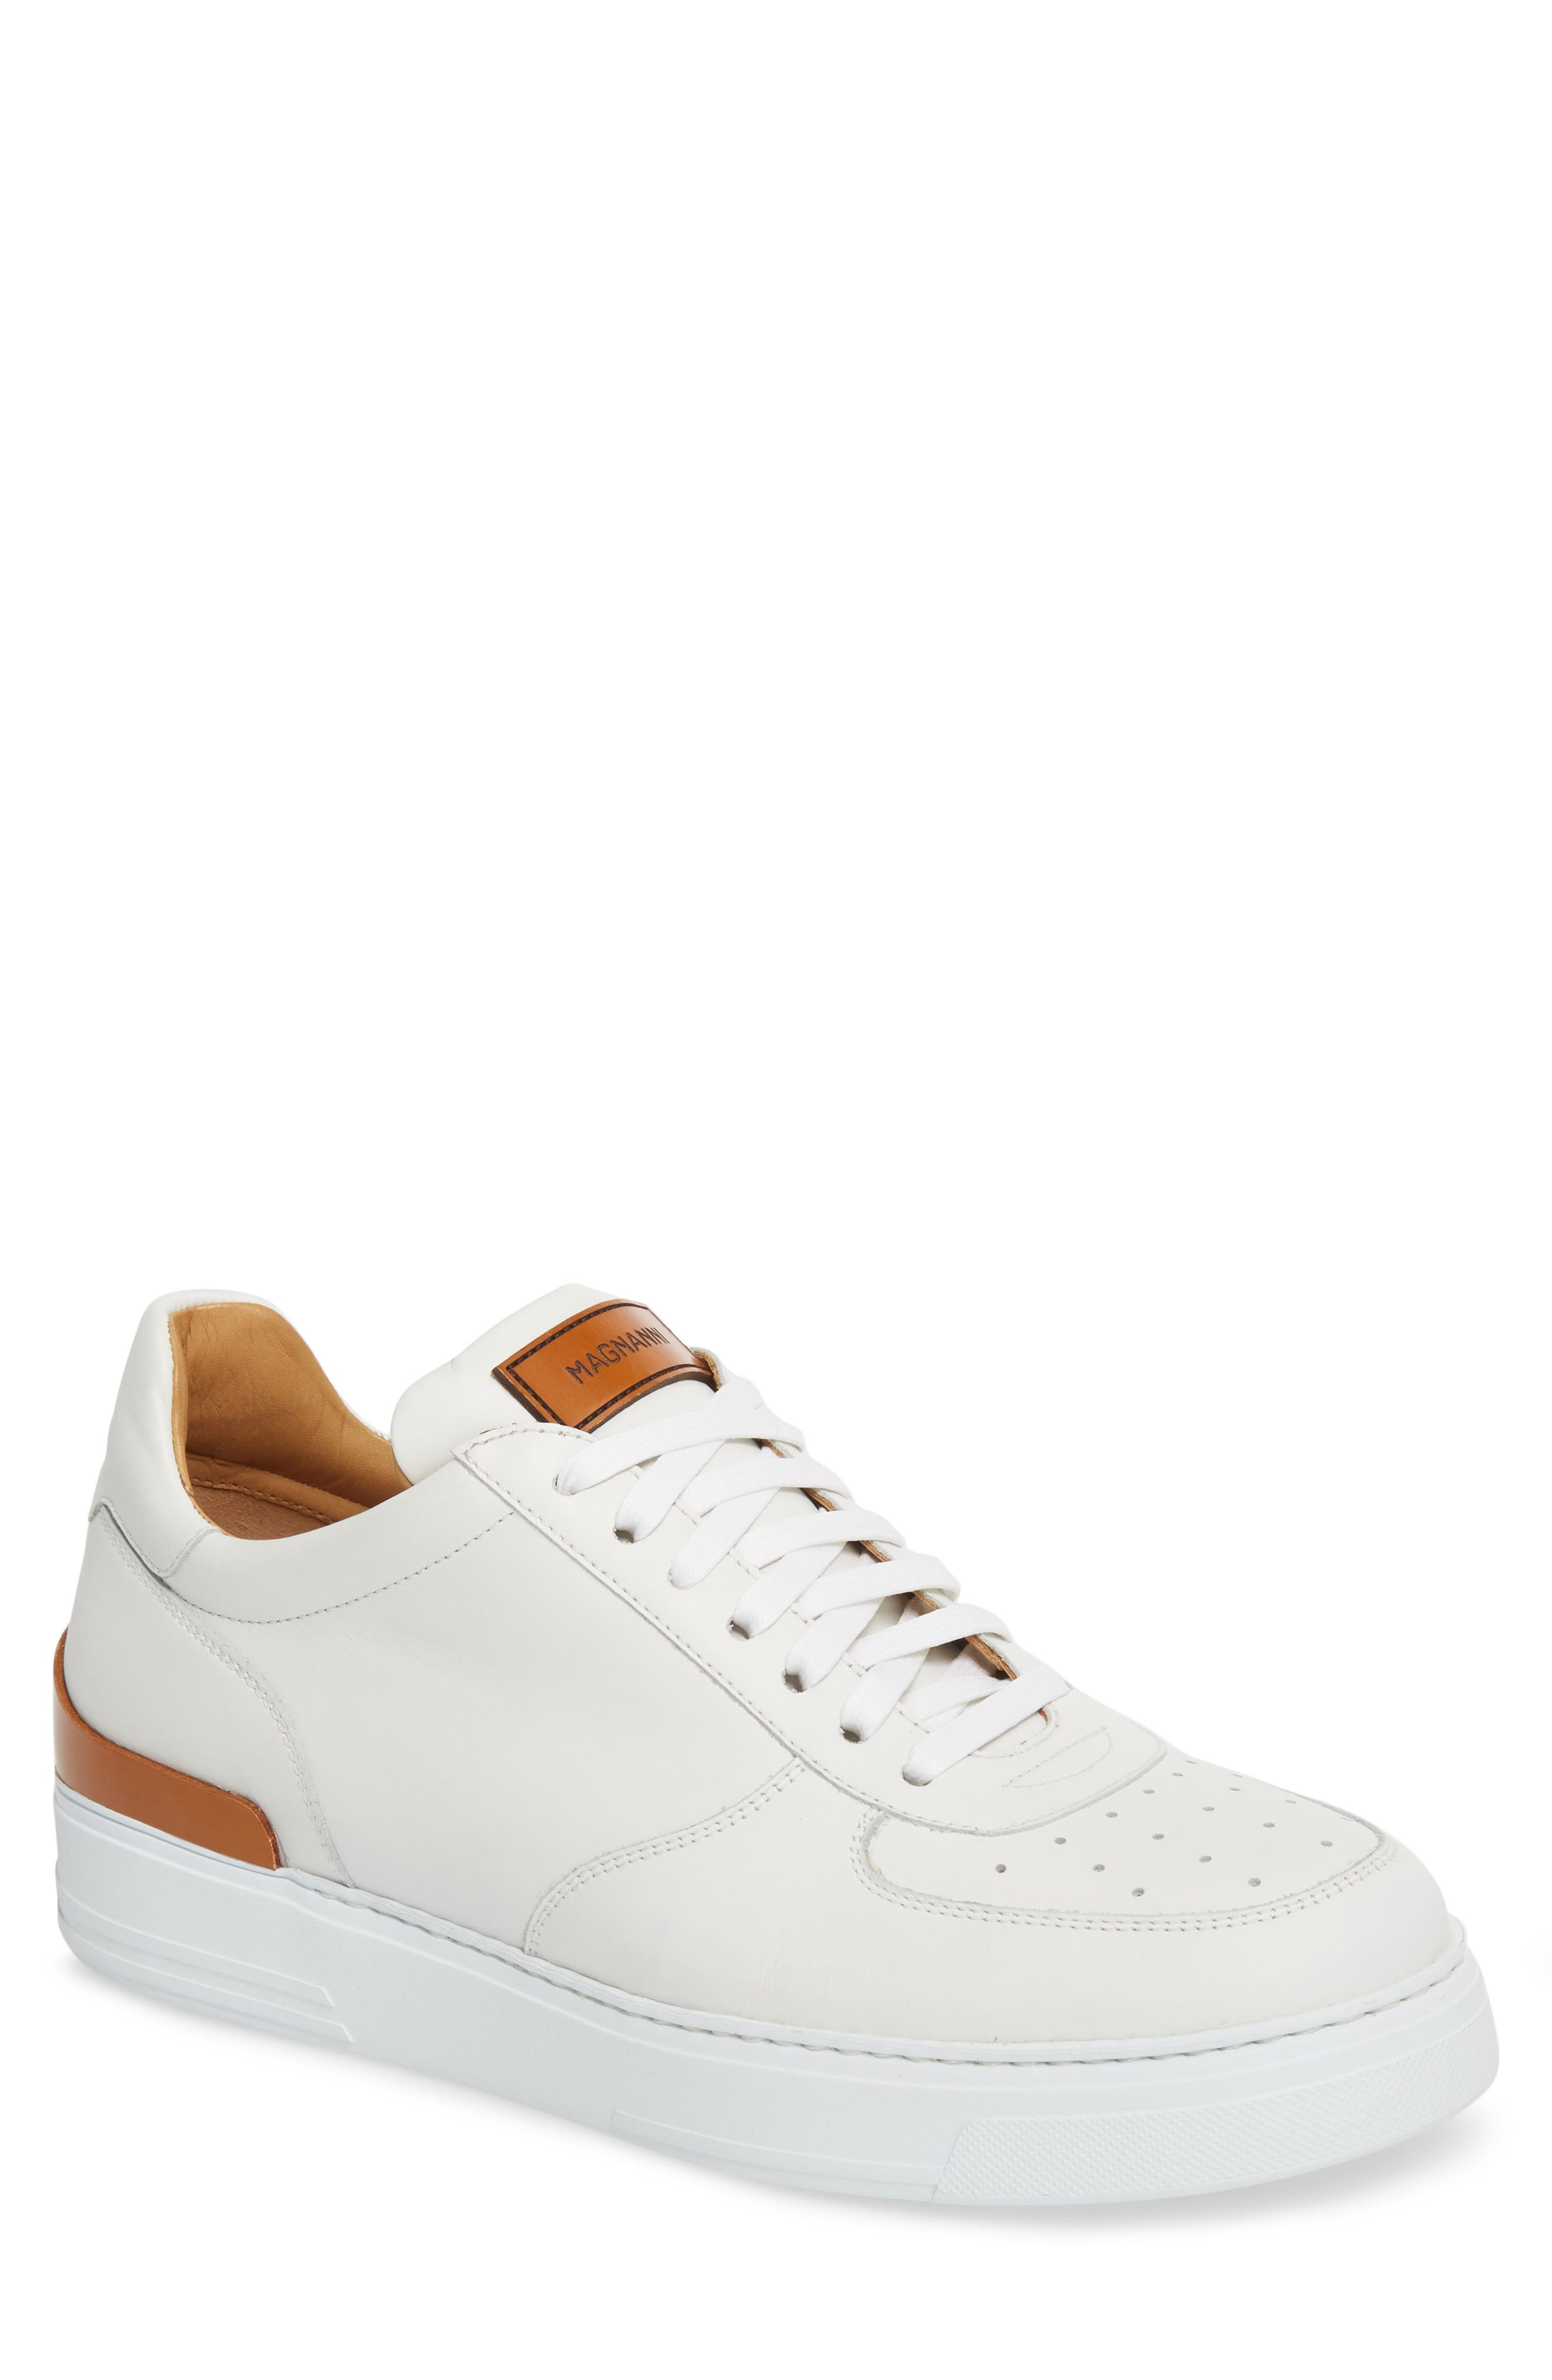 Vada Lo Lace Up Sneaker,                             Main thumbnail 1, color,                             WHITE LEATHER